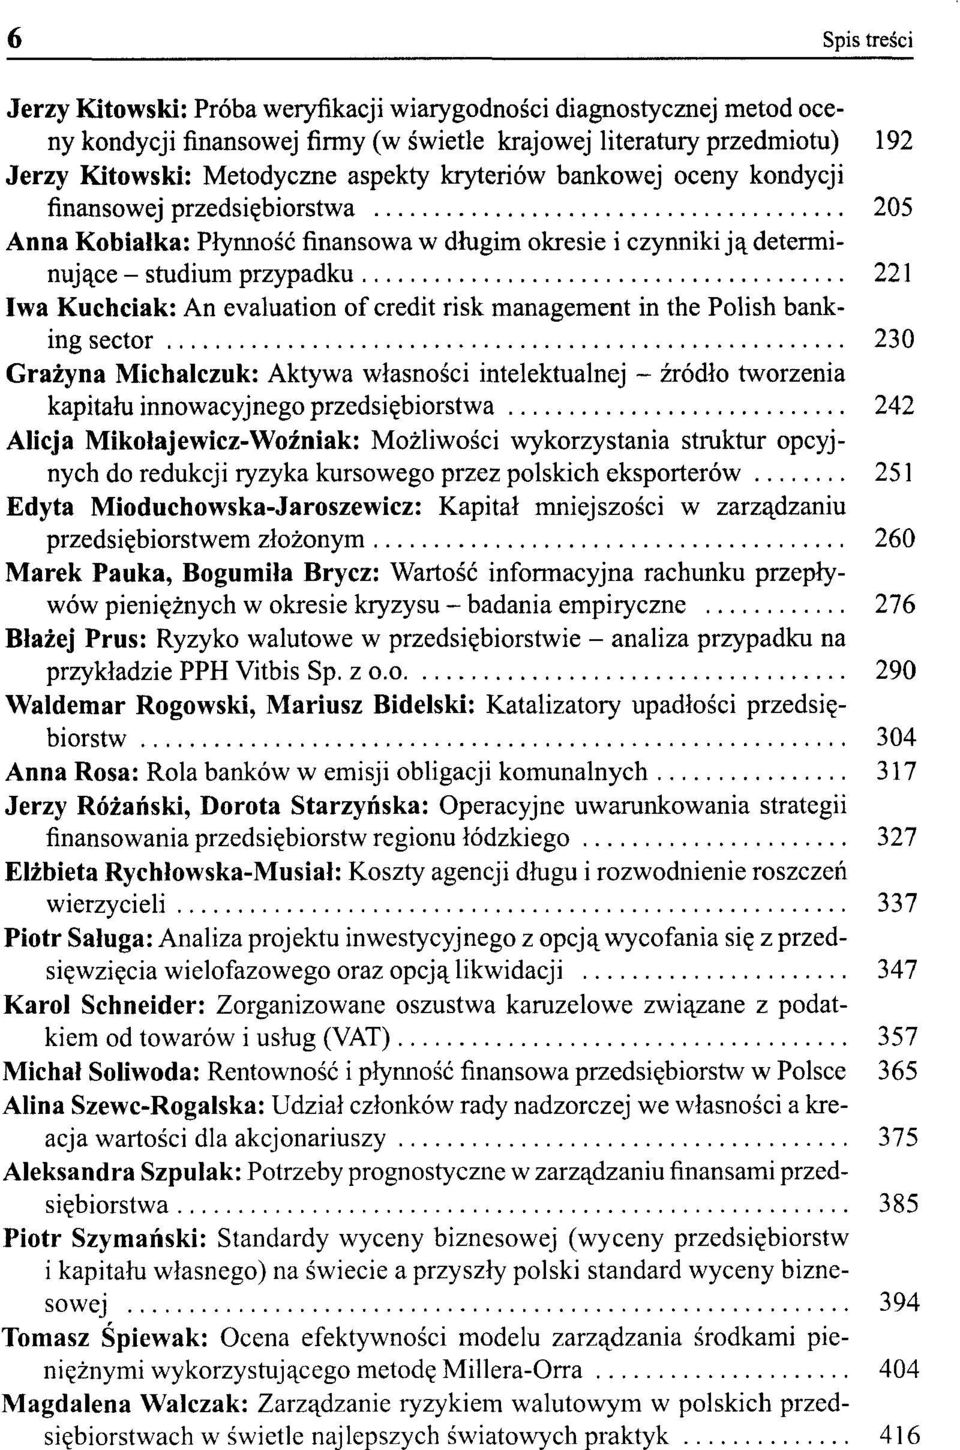 credit risk management in the Polish banking sector 230 Grażyna Michalczuk: Aktywa własności intelektualnej - źródło tworzenia kapitału innowacyjnego przedsiębiorstwa 242 Alicja Mikołajewicz-Woźniak: